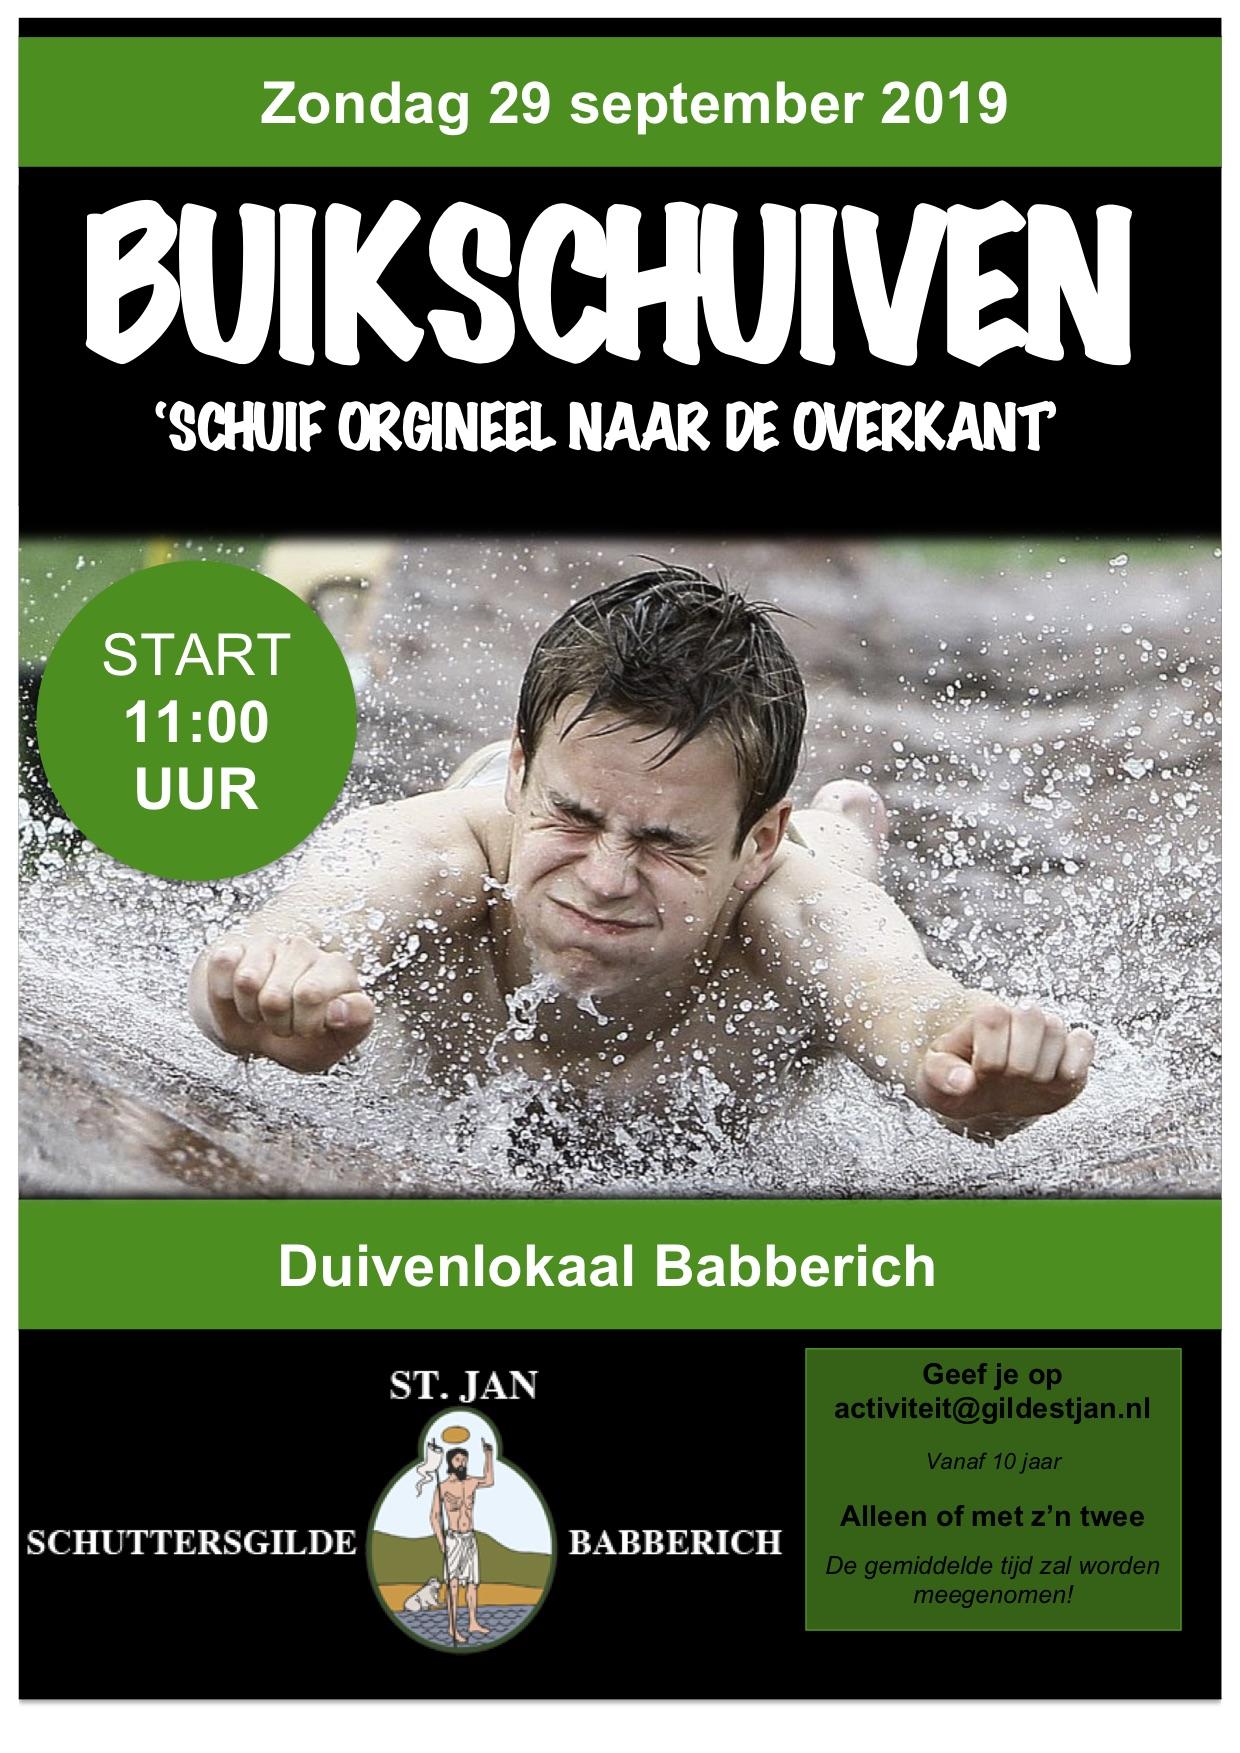 Flyer buikschuiven 29 september 2019.jpg